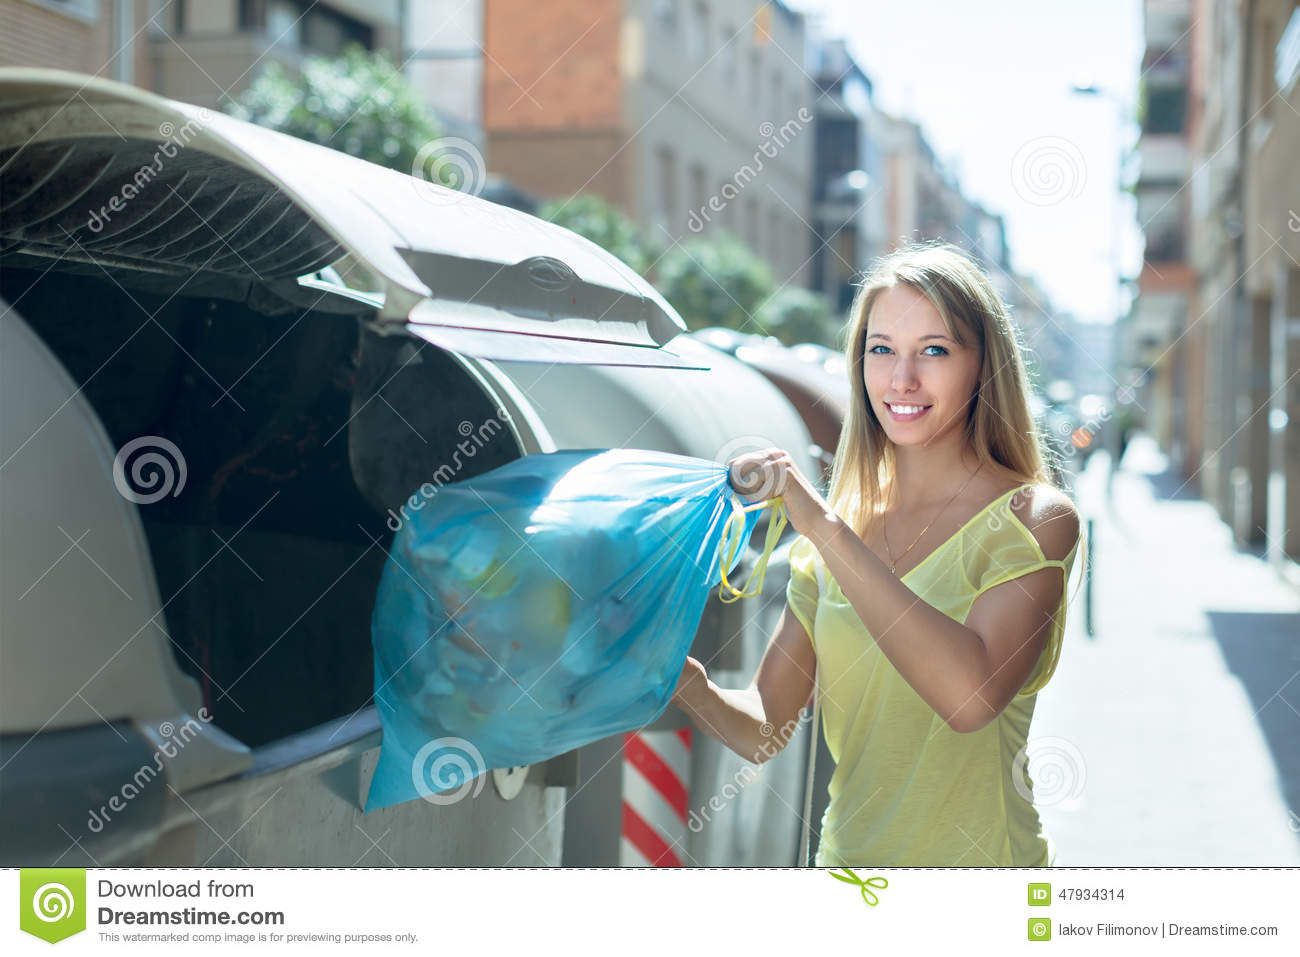 https://thumbs.dreamstime.com/z/woman-trash-bags-near-garbage-bin-smiling-girl-rubbish-refuse-collection-container-47934314.jpg